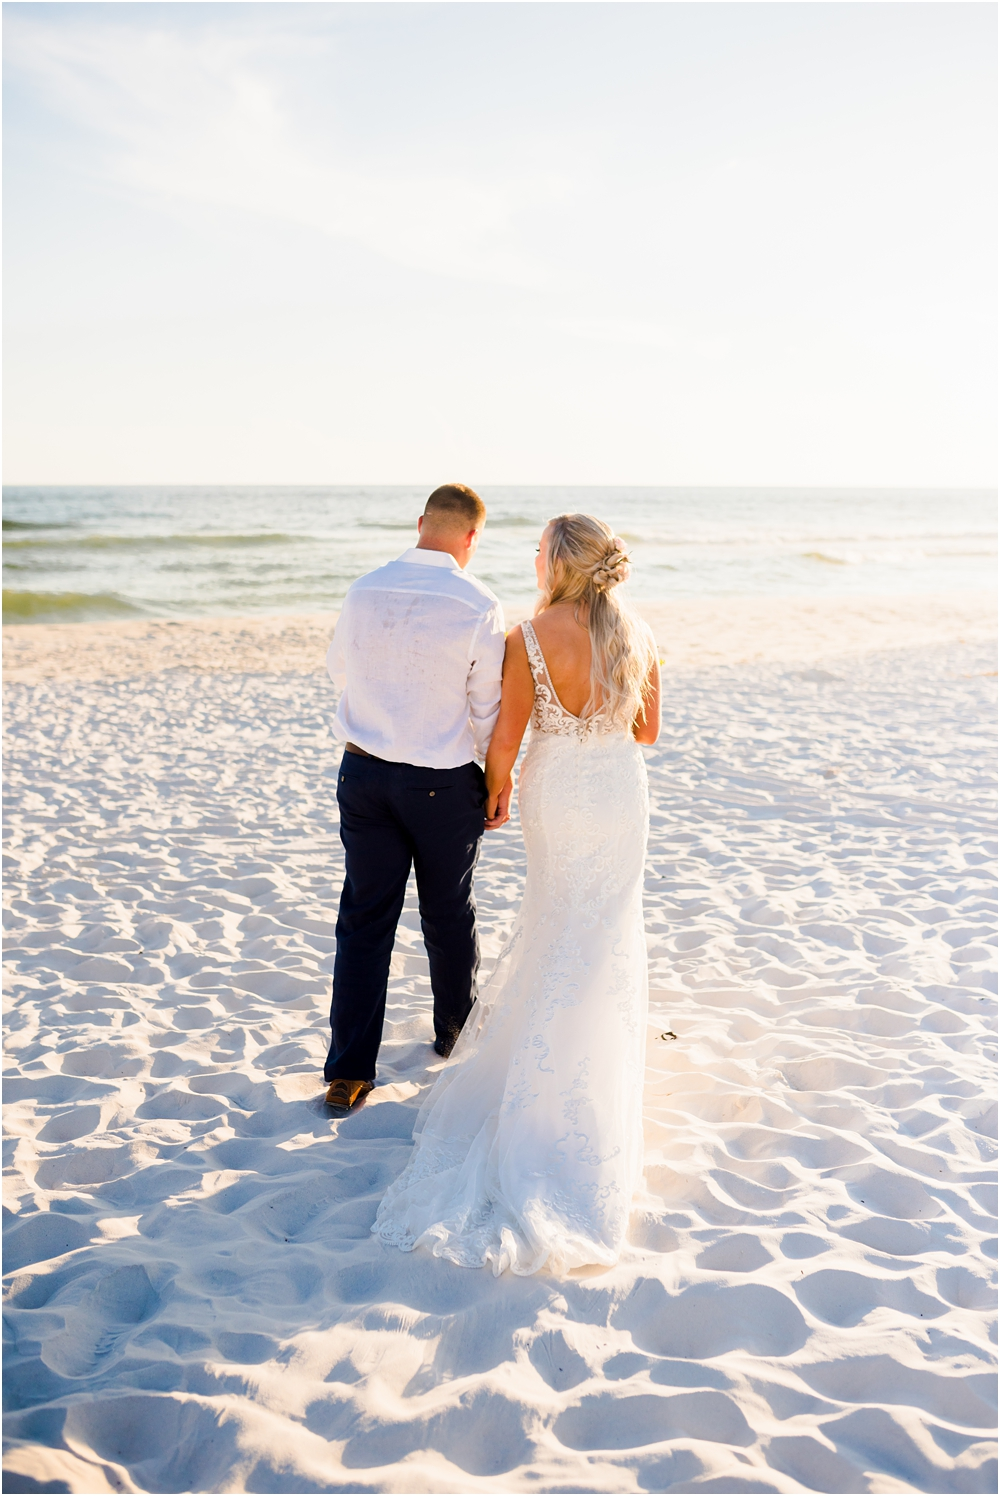 mcglothlin-wedding-kiersten-stevenson-photography-30a-panama-city-beach-dothan-tallahassee-(94-of-145).jpg